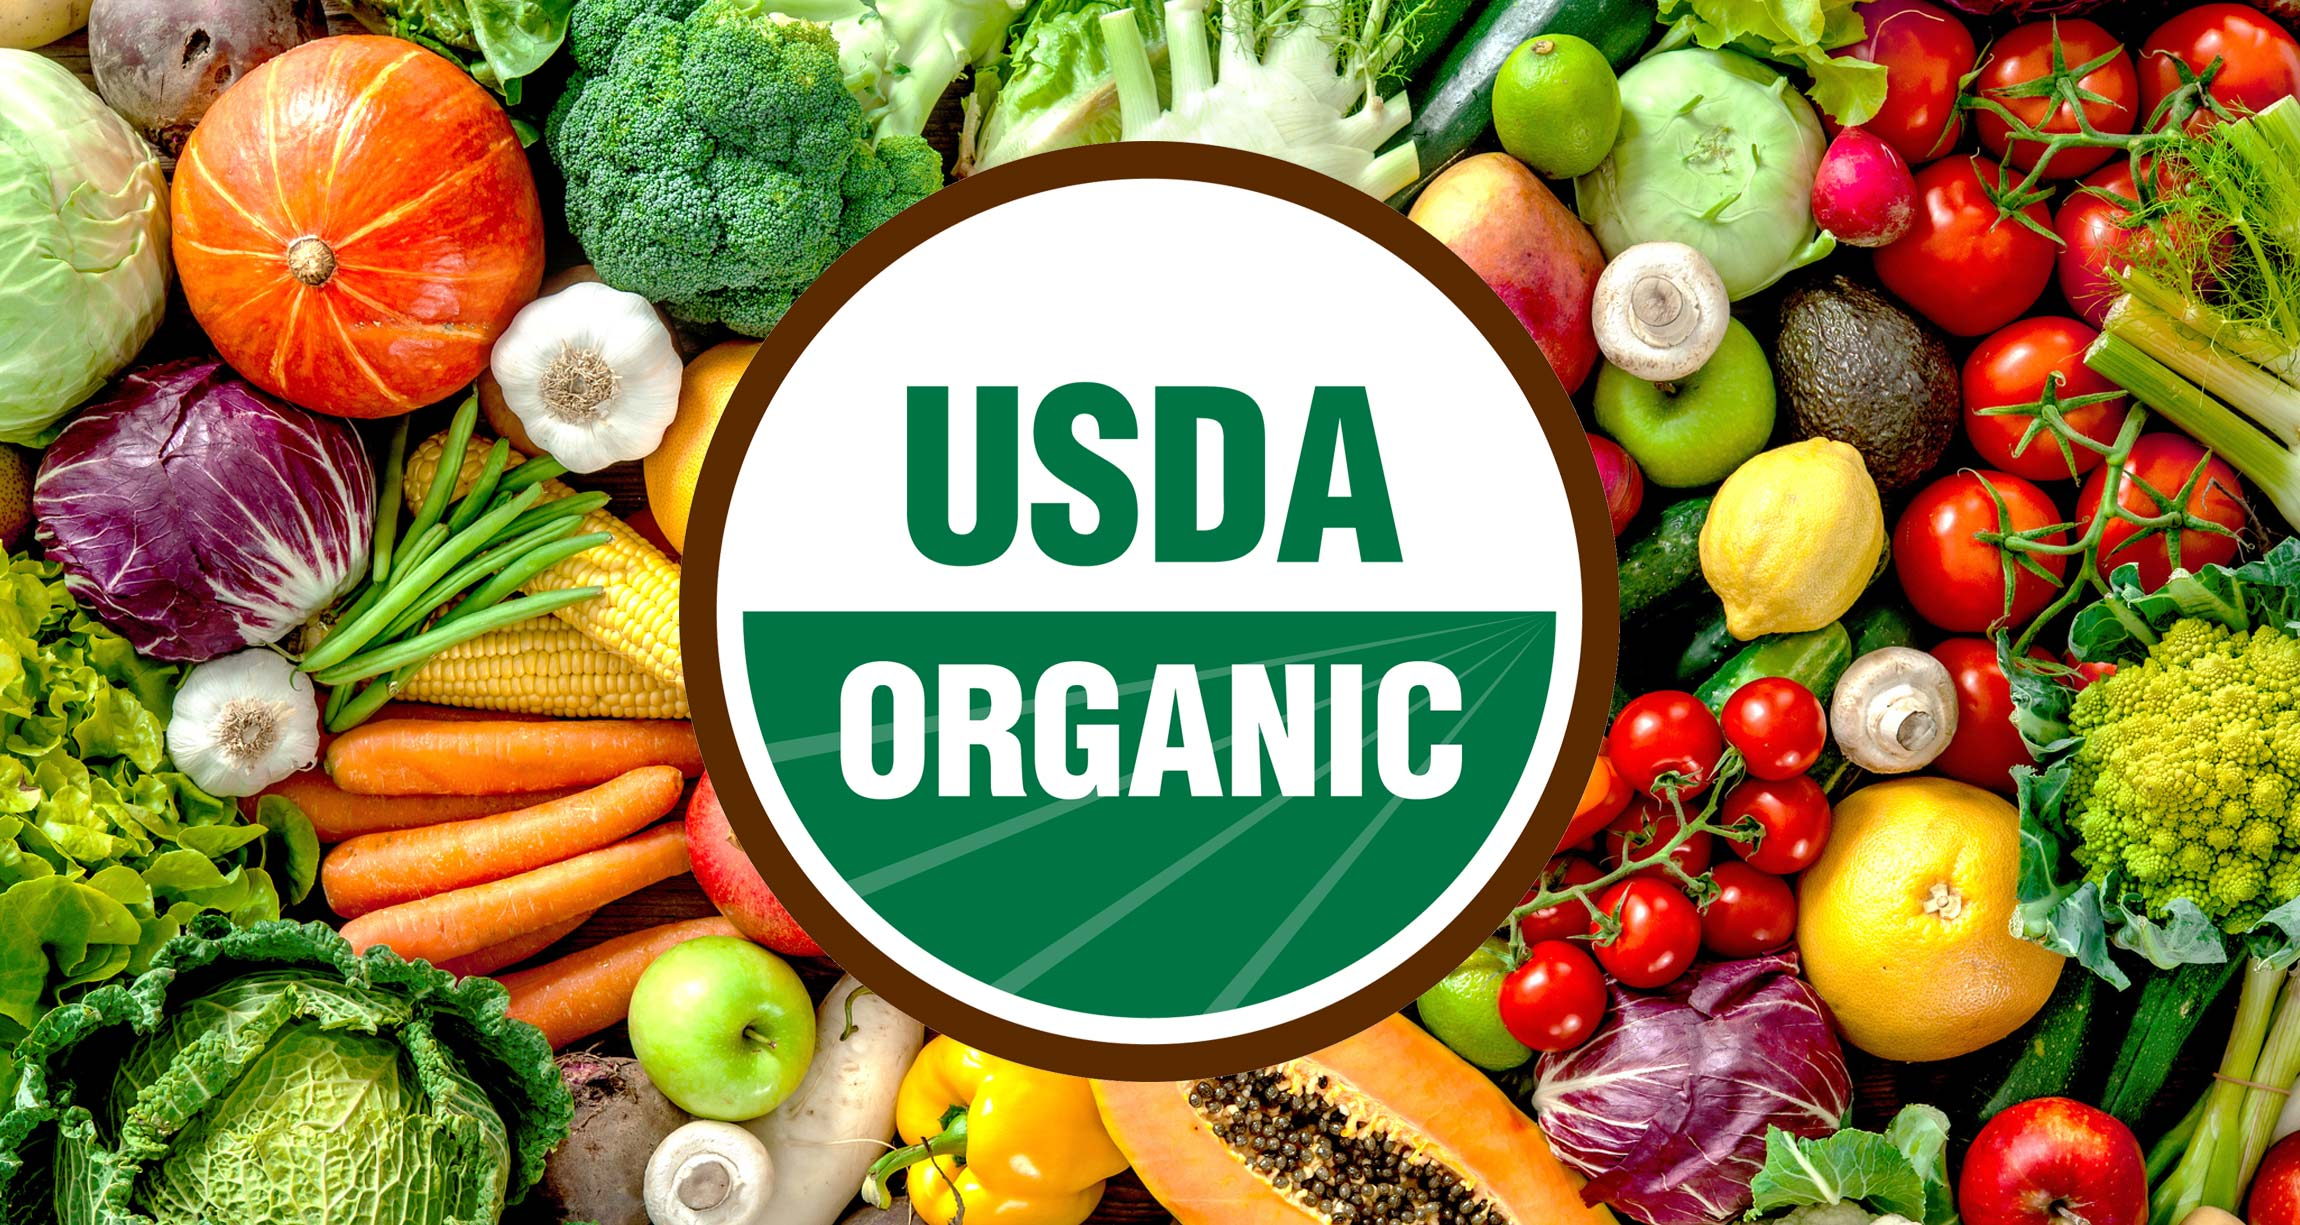 Which fruits and vegetables should be organic